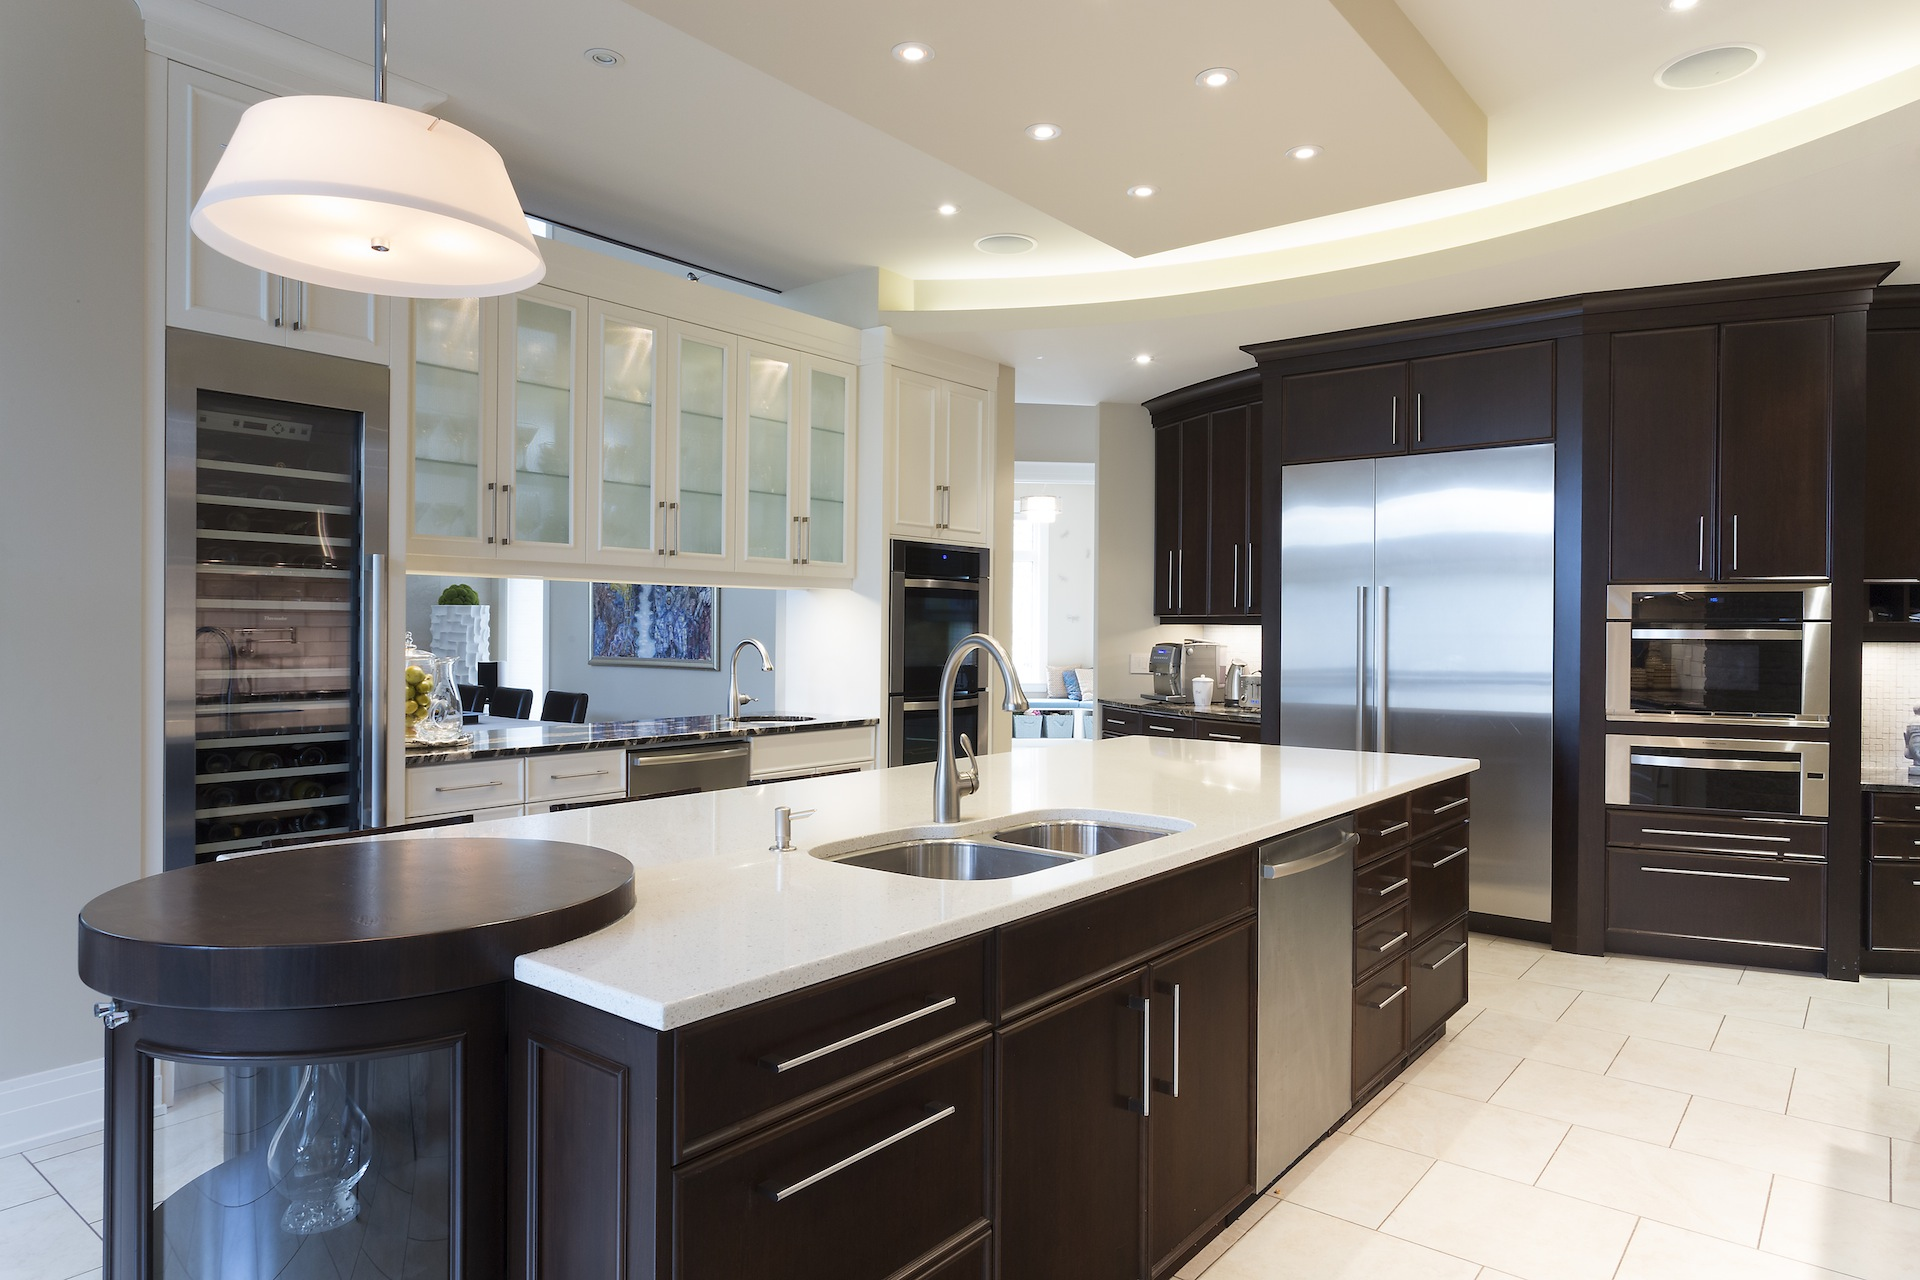 types soft kitchens frosted hardware contemporary options furniture close knobs pictures cabinets white inset black outside with glass kitchen cabinetry tips hinges ideas cabinet